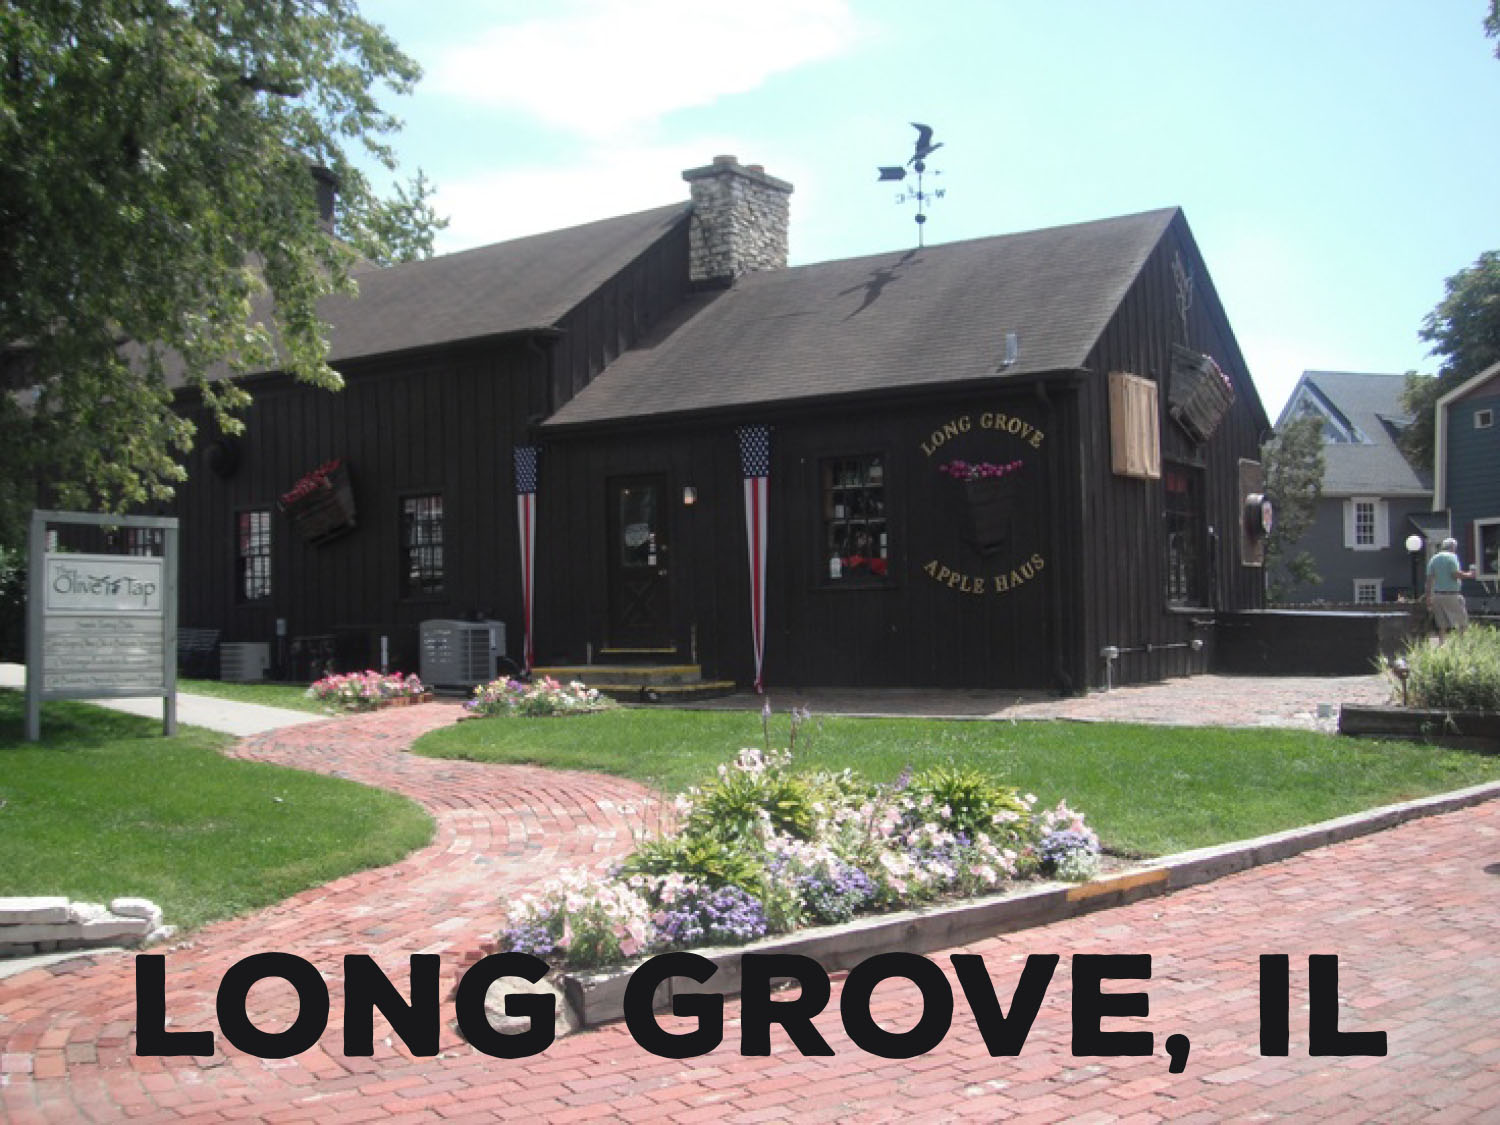 Long grove realtor offers homes for sale and local info for Grove house